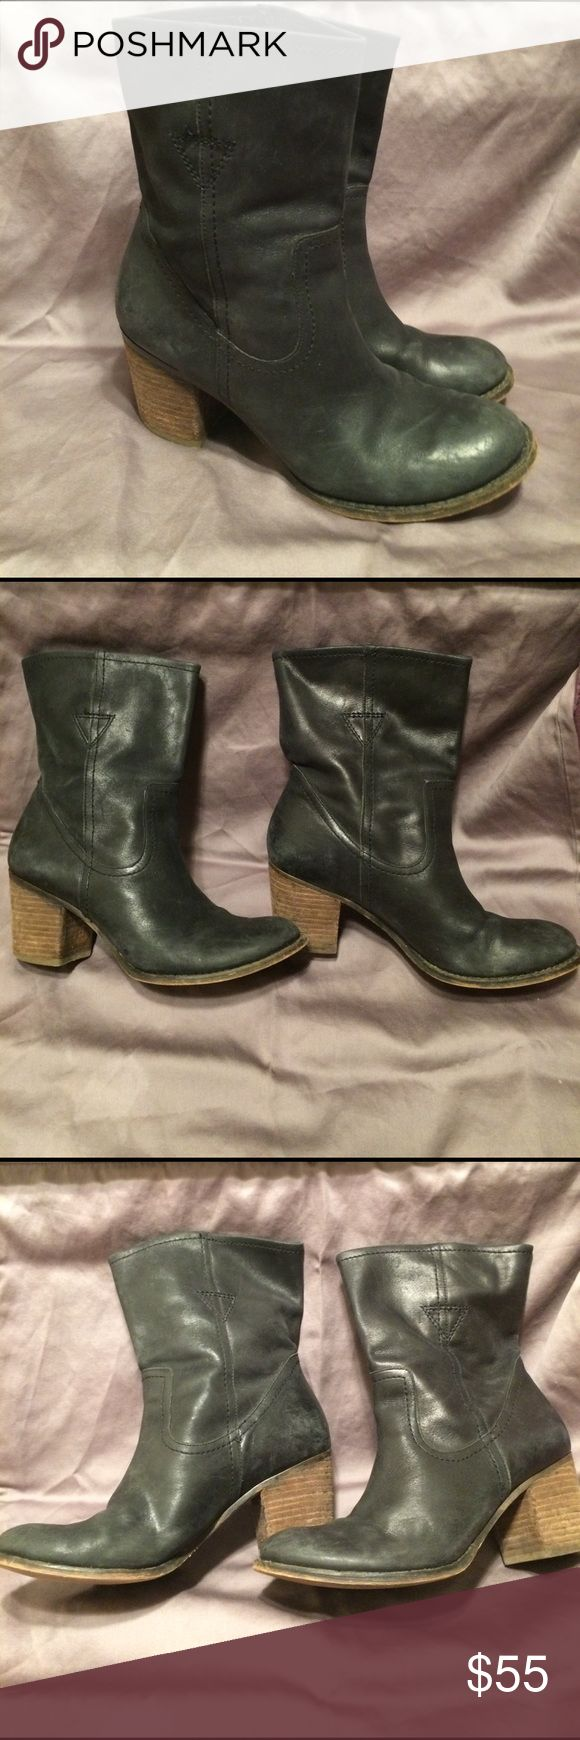 Black Leather Guess by Marciano Booties Guess by Marciano Black Leather Booties. Wear on heels. Some scuffing that a good shining can fix! 2.5 inch heel. Real leather! Guess by Marciano Shoes Ankle Boots & Booties